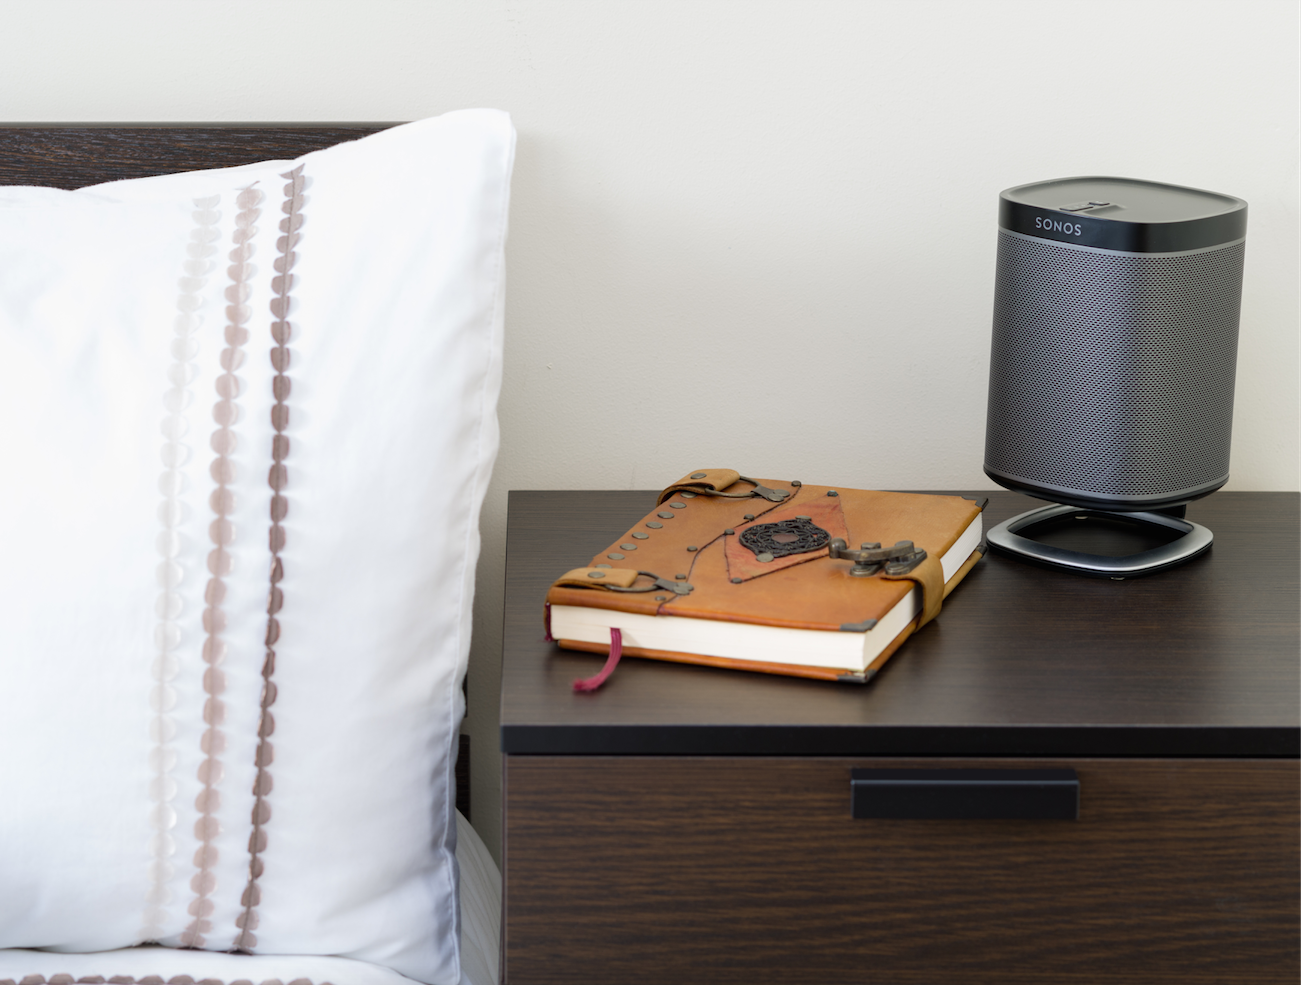 The Flexson Desk Stand for the SONOS PLAY1 Ideal for use on